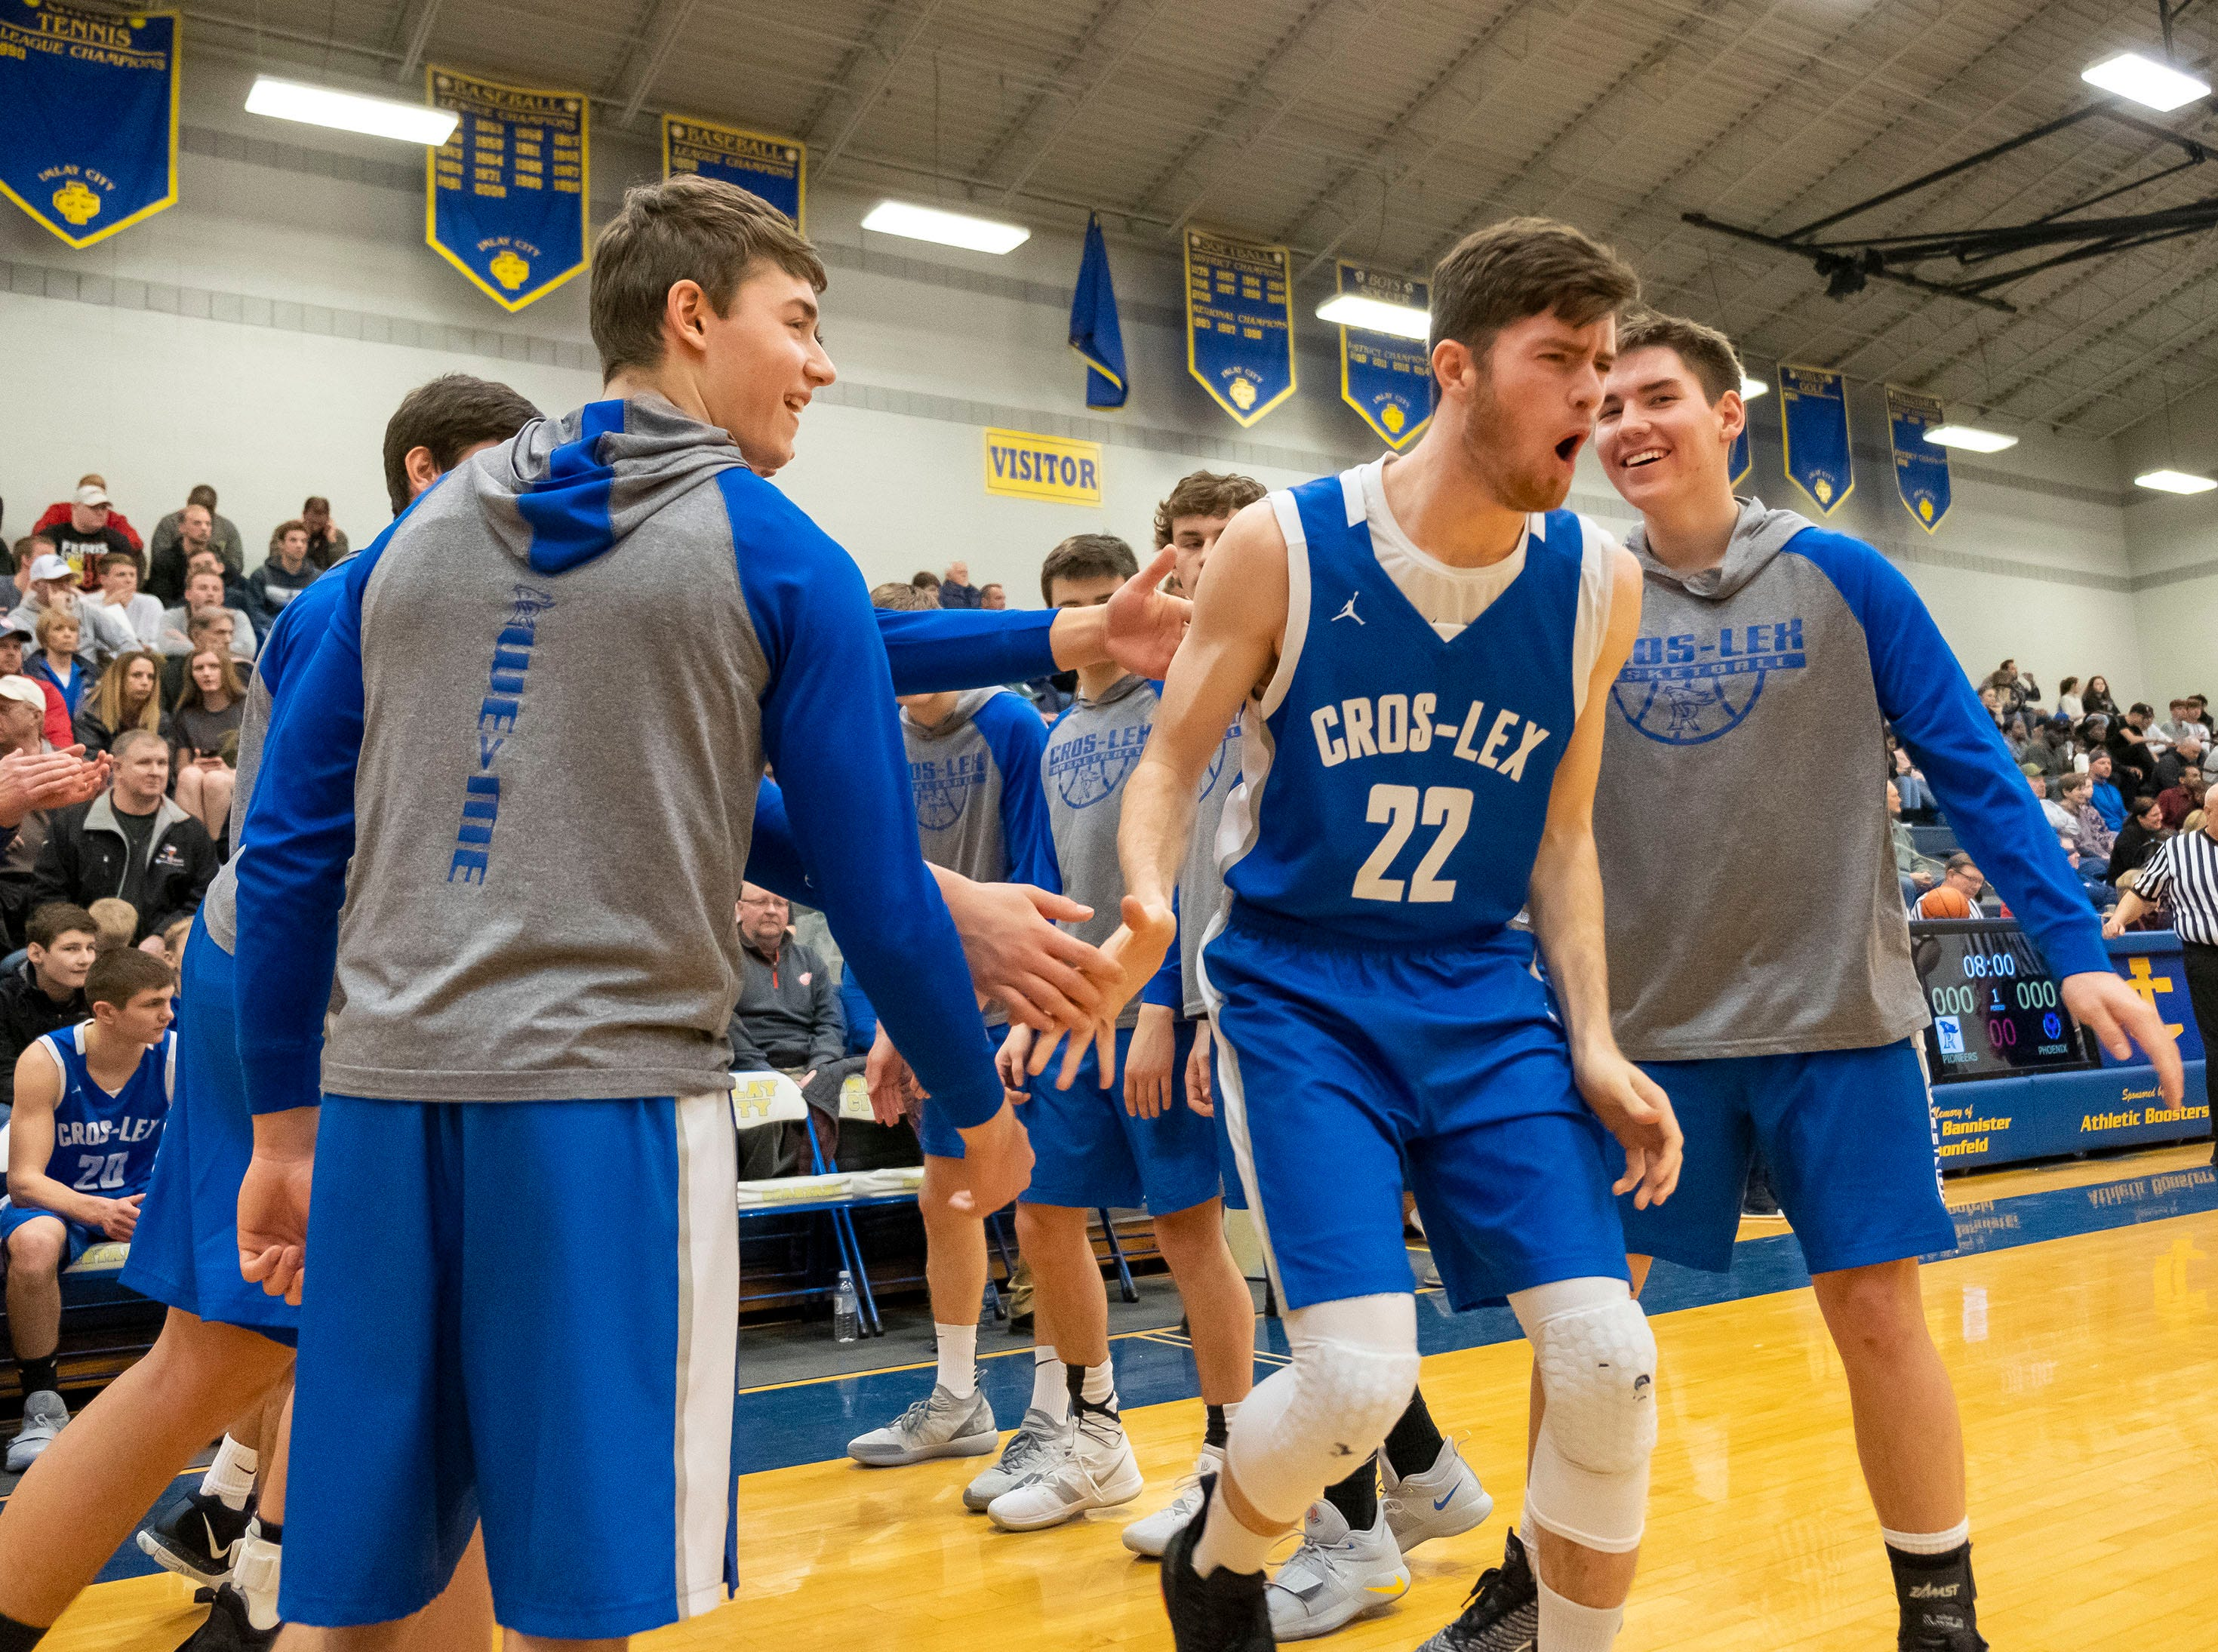 Cros-Lex High School's Tate Shaffer shouts as he takes the court before the MHSAA Division 2 regional basketball game against Pontiac High School Tuesday, March 5, 2019 at Imlay City High School.